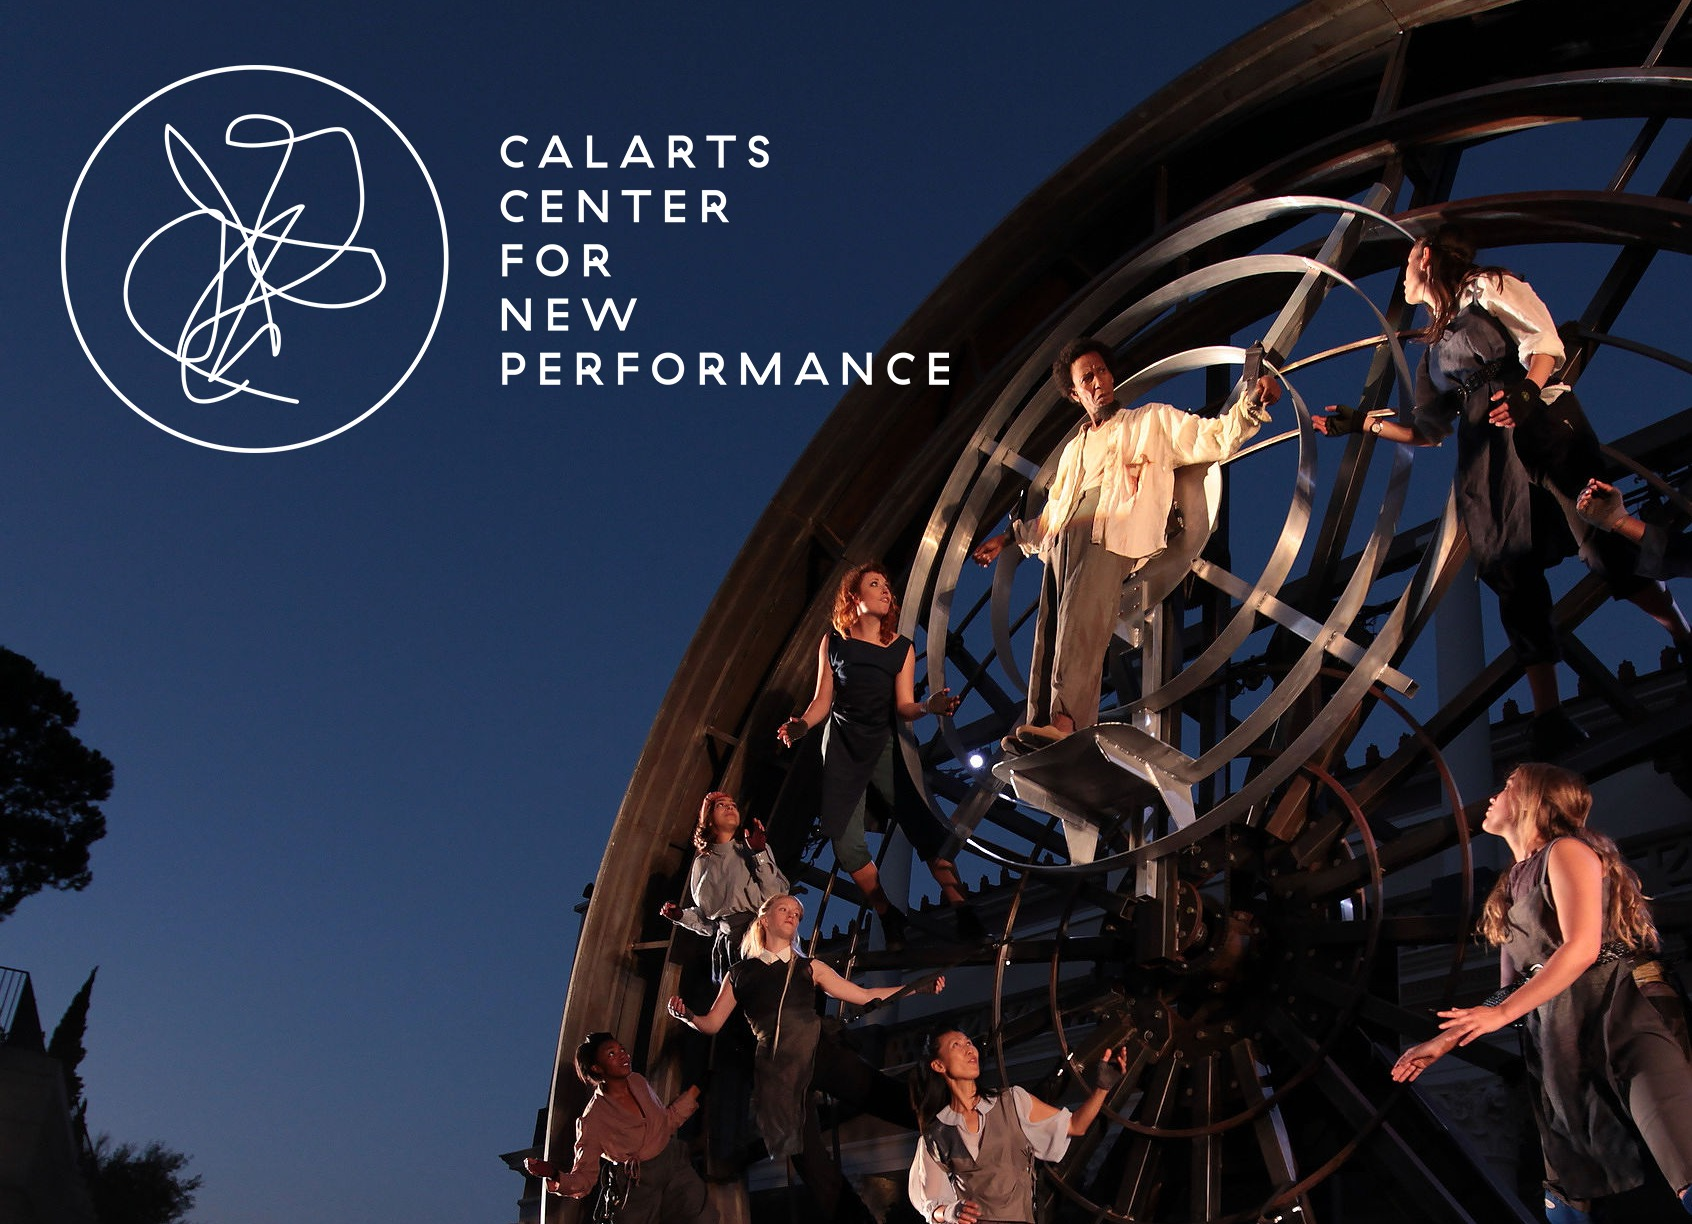 CalArts Center for New Performance